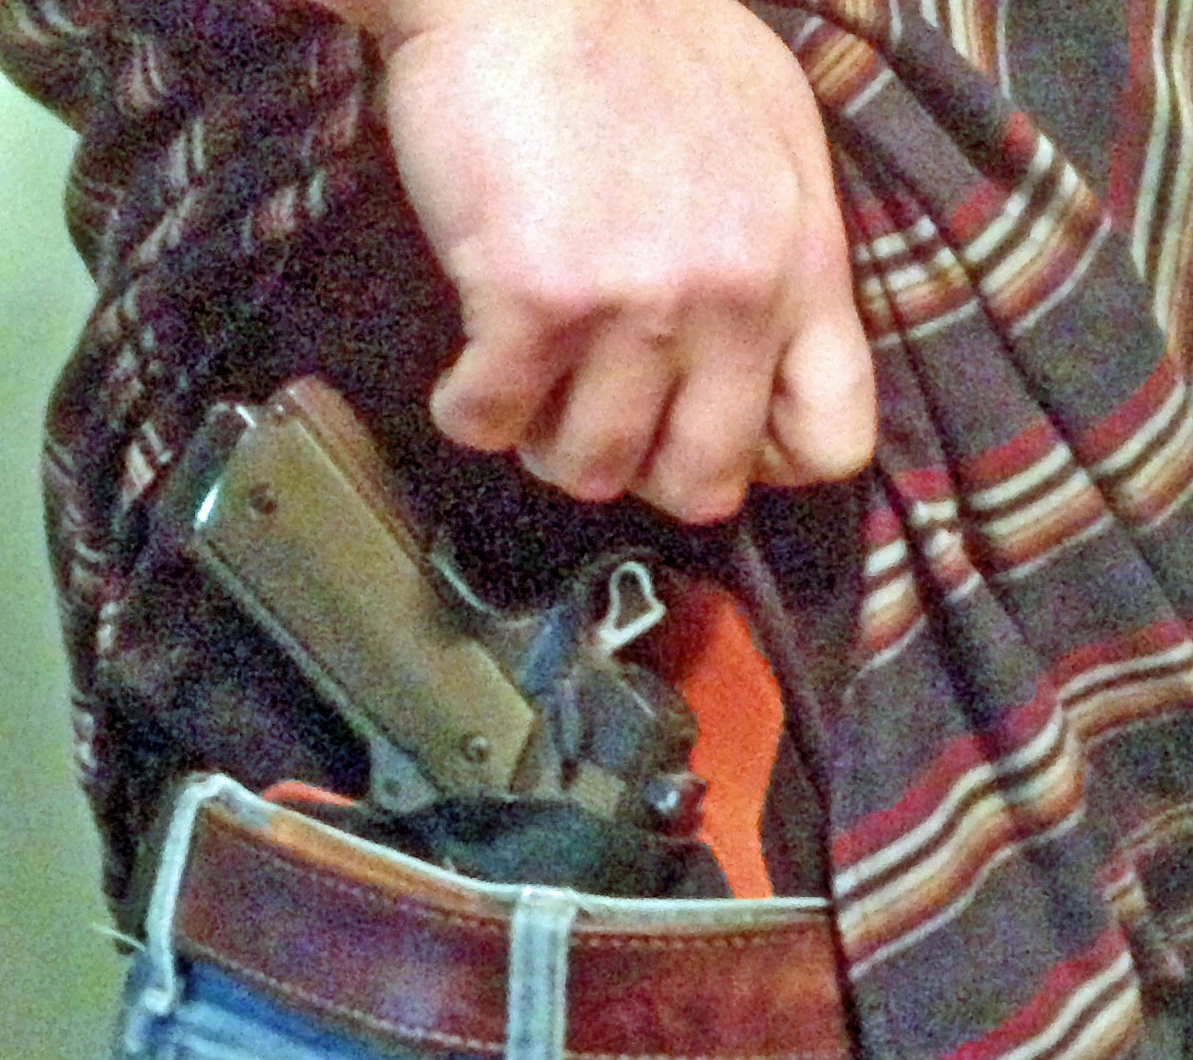 concealed carry picture - showing firearm